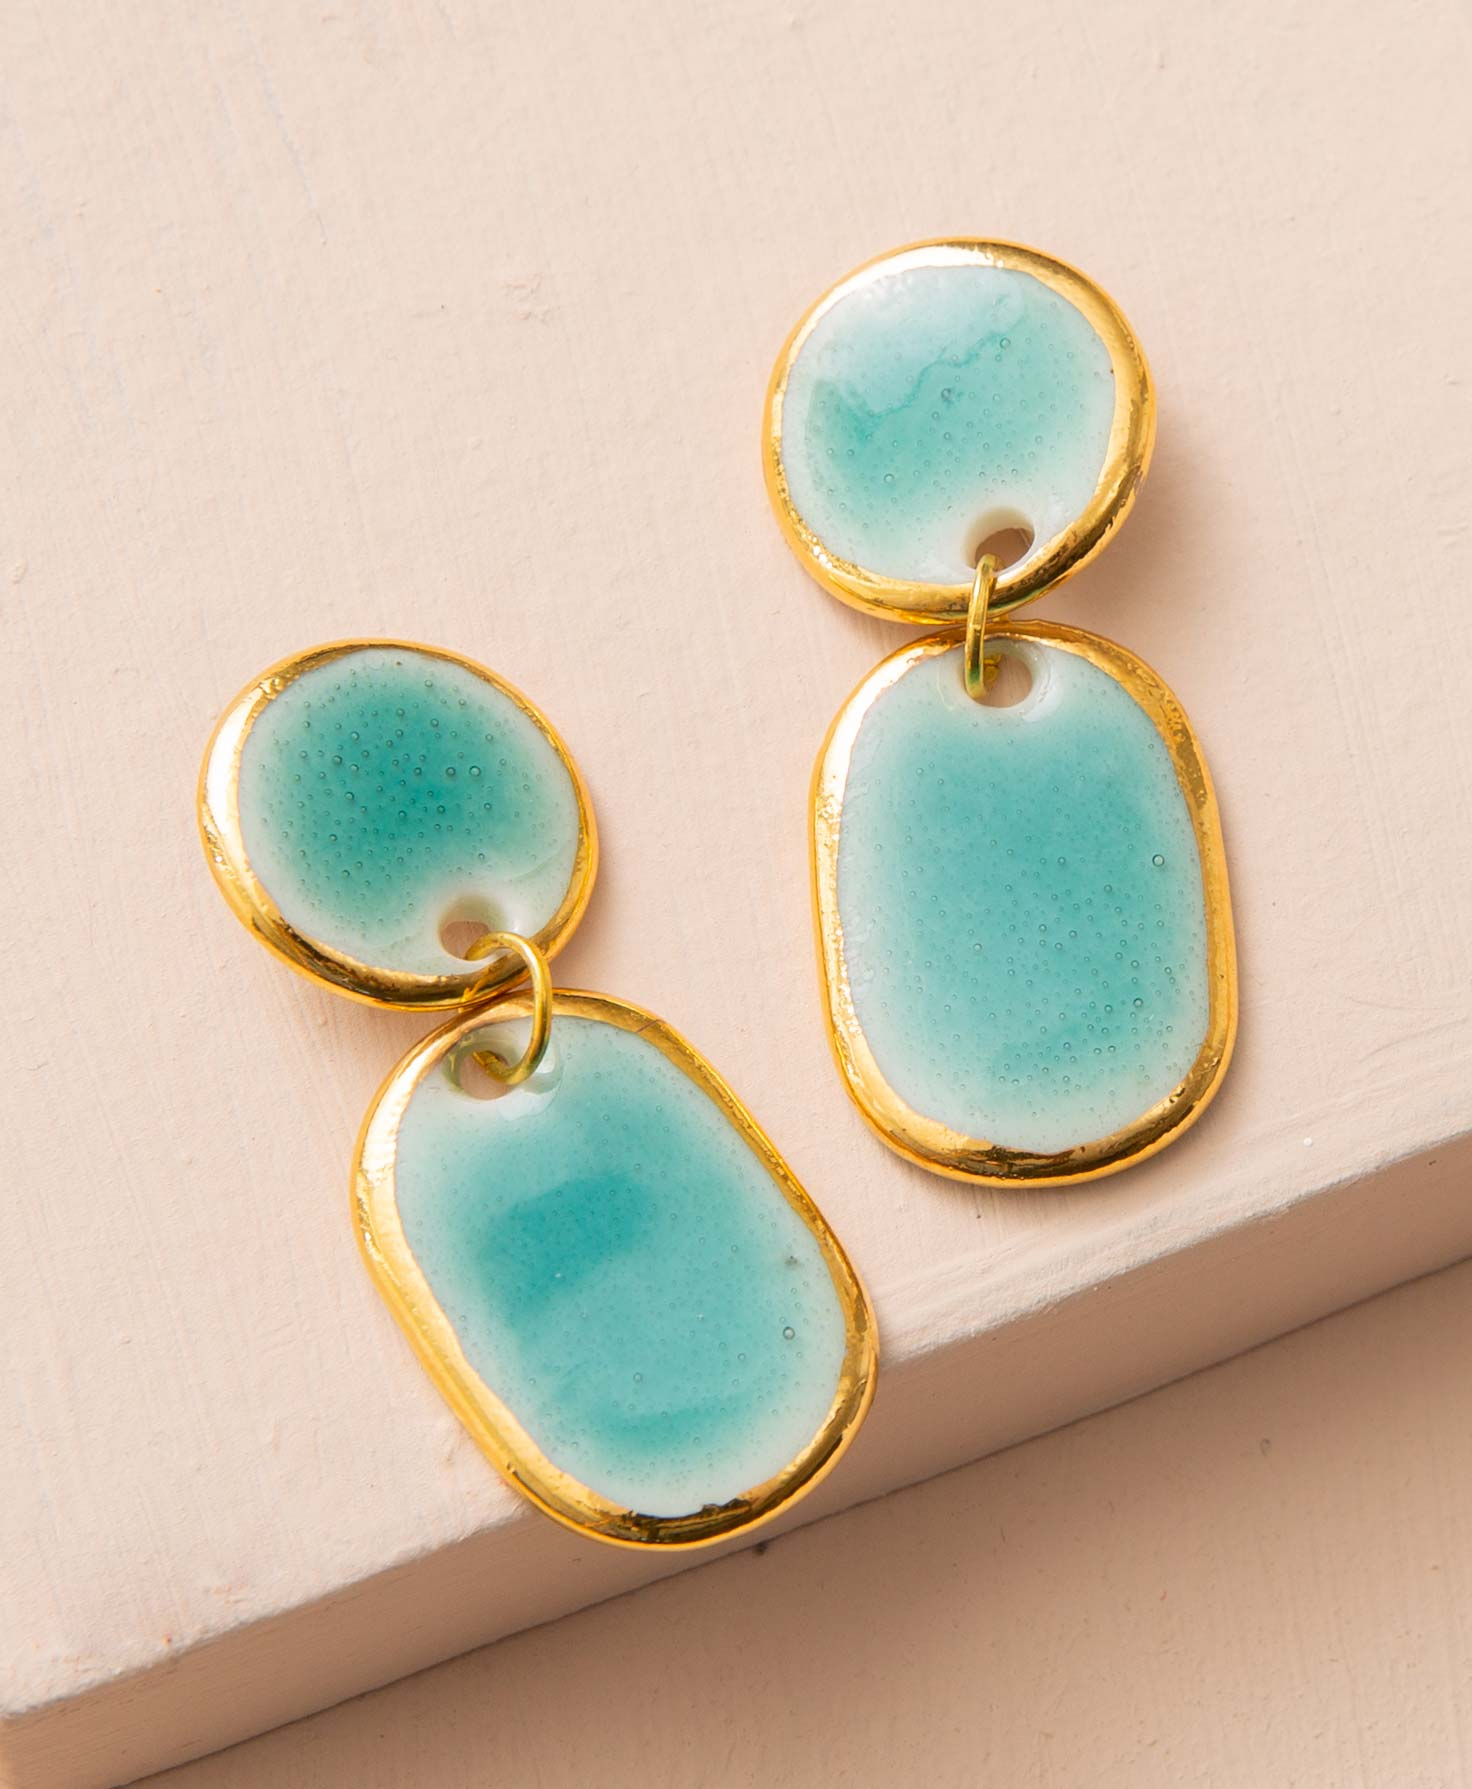 The Union Earrings rest on a blush colored block. They are stud-style earrings made of glossy porcelain. The porcelain has been finished with a teal glaze, and each earring contains unique natural variations. A flat circular disc of porcelain is connected to the ear post. Below this, an oval-shaped porcelain piece hangs down via a gold jump ring. Both of these porcelain shapes have a shining gold luster around their edges.